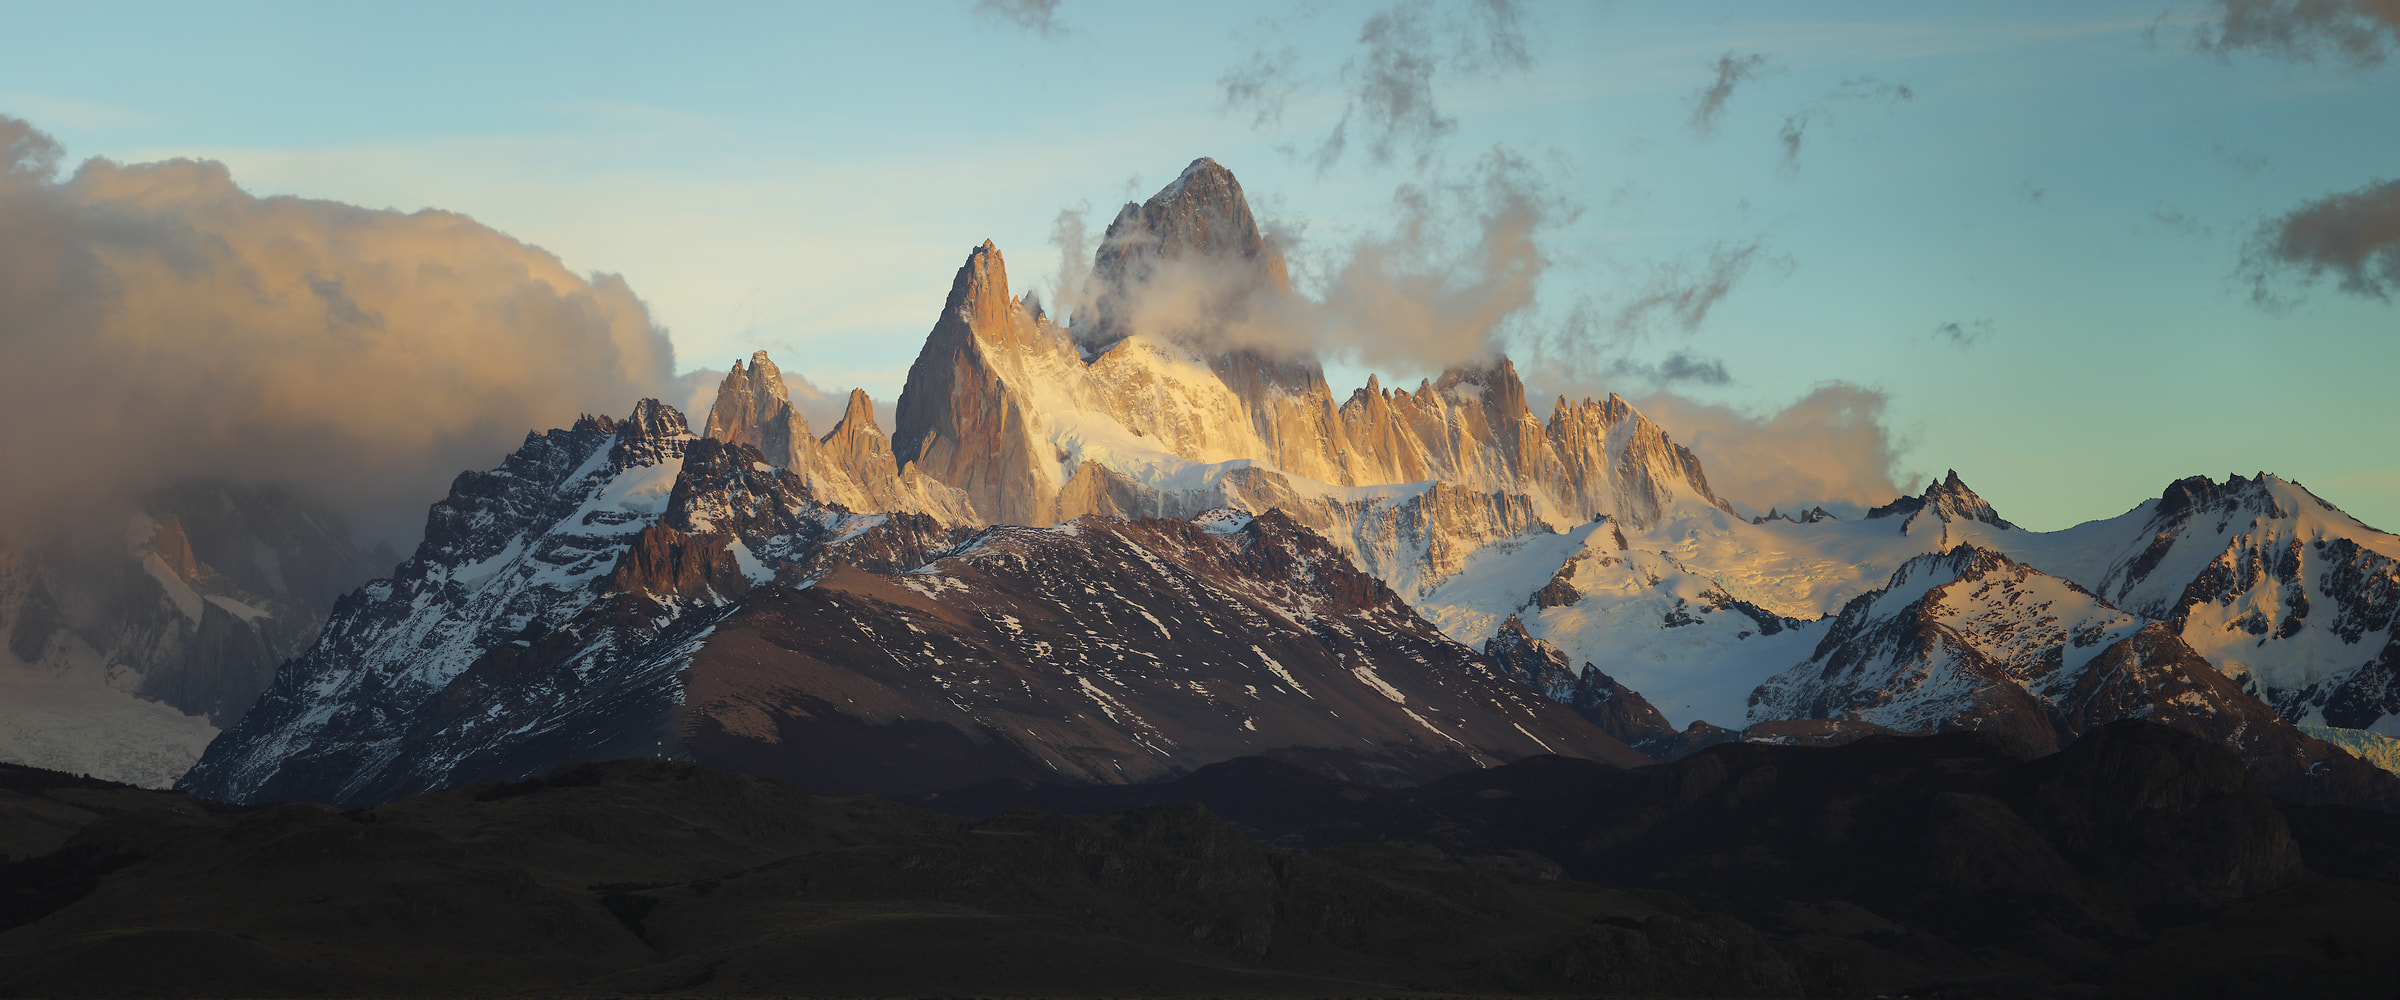 158 megapixels! A very high resolution, large-format VAST photo print of an epic mountain scene with clouds and blue sky above misty mountains; landscape photograph created by Alexandre Deschaumes in El chalten, Argentina, Patagonia